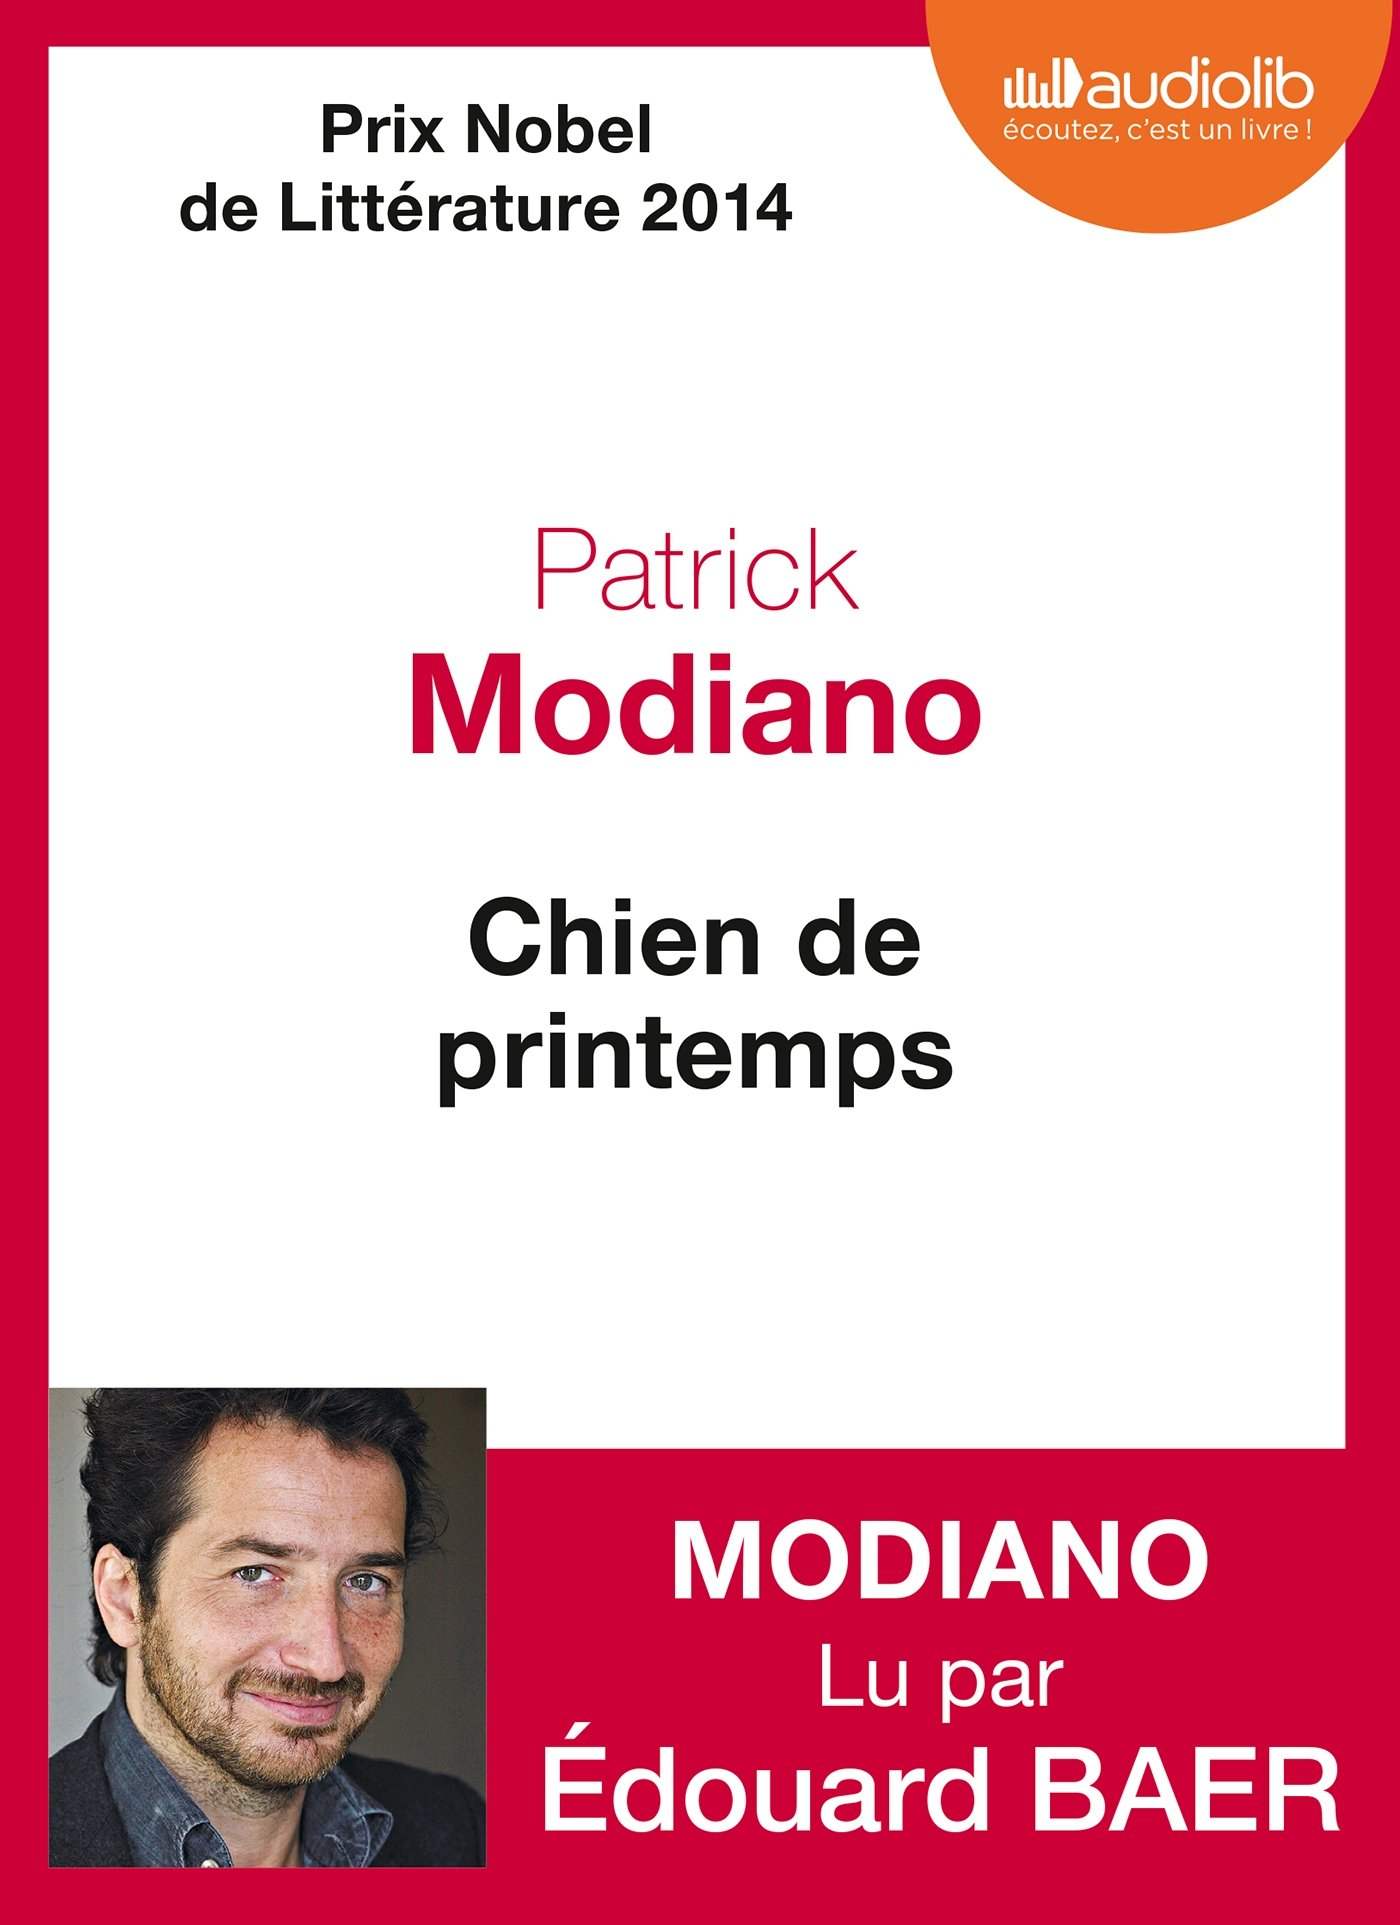 [EBOOKS AUDIO] PATRICK MODIANO Chien de printemps [mp3 320 kbps]